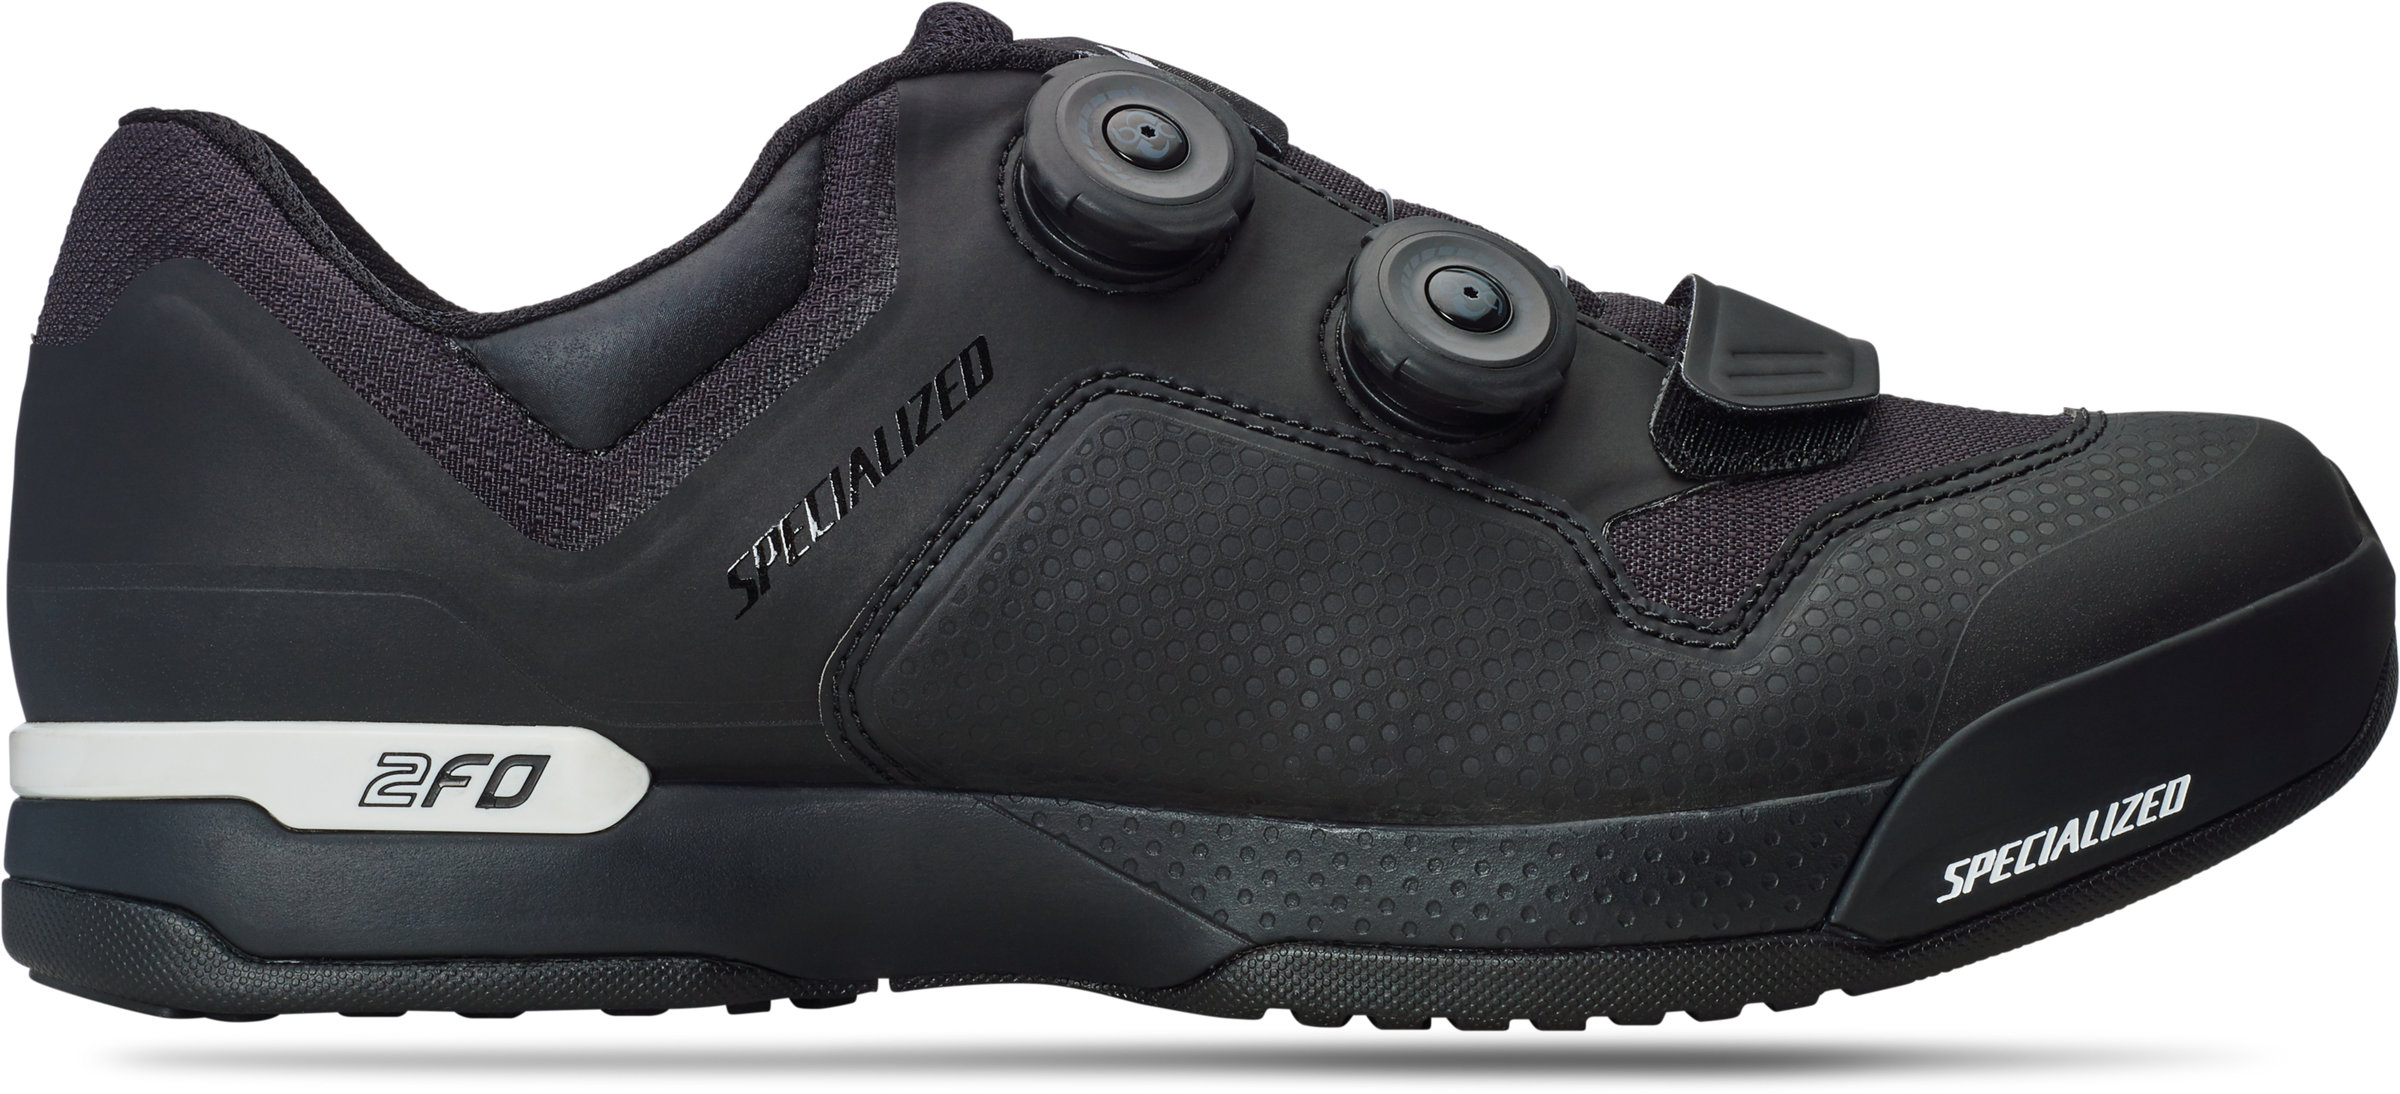 407a25714cc Specialized 2FO ClipLite Mountain Bike Shoes - Elite Cycling ...